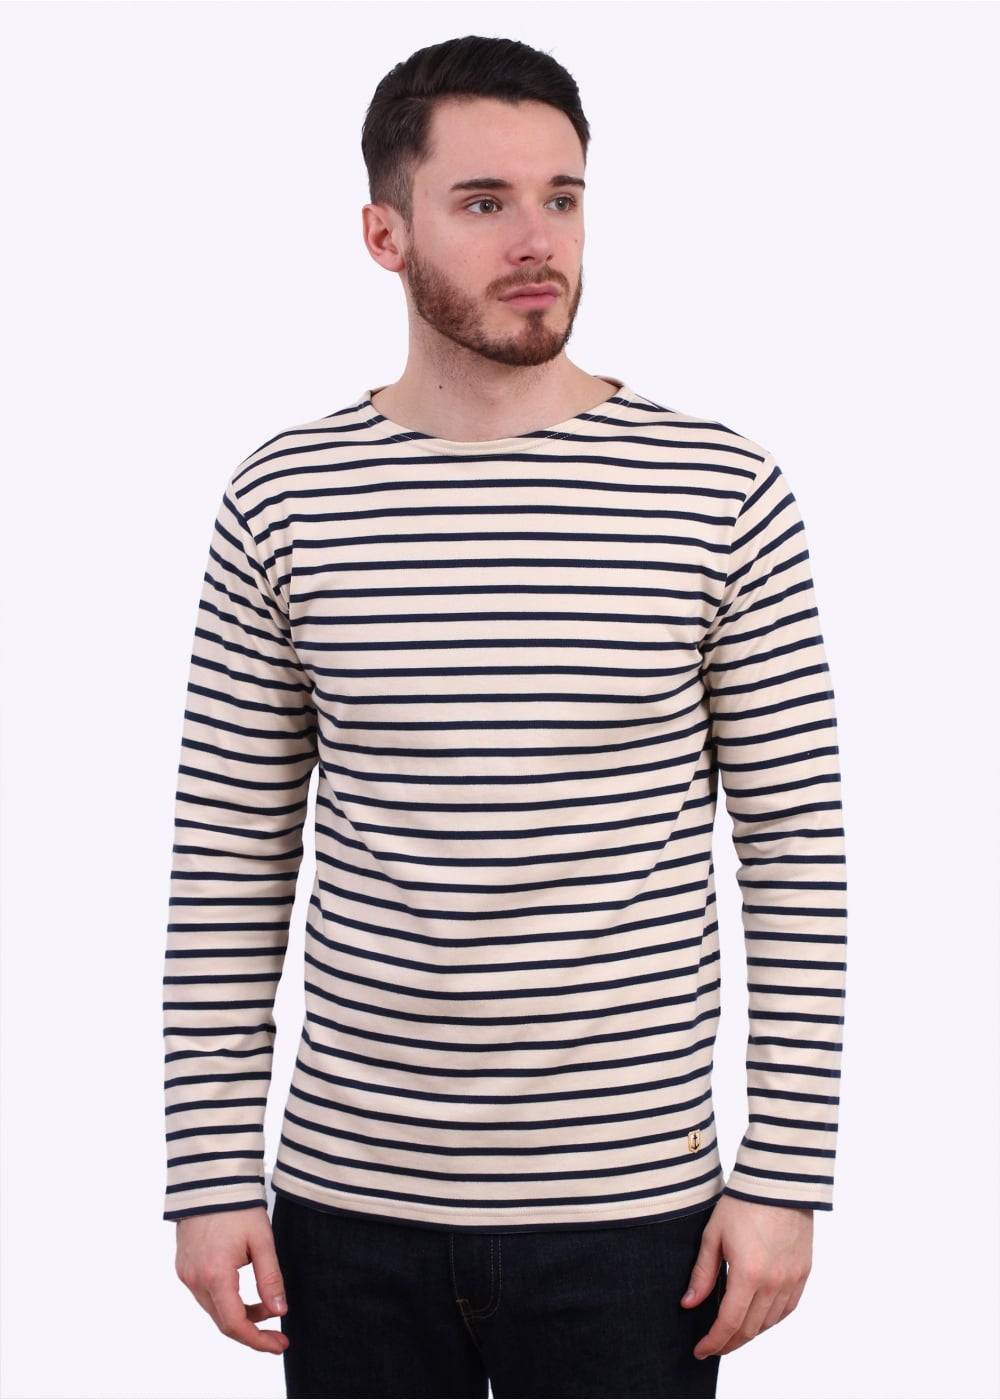 armor lux breton t shirt cream navy. Black Bedroom Furniture Sets. Home Design Ideas